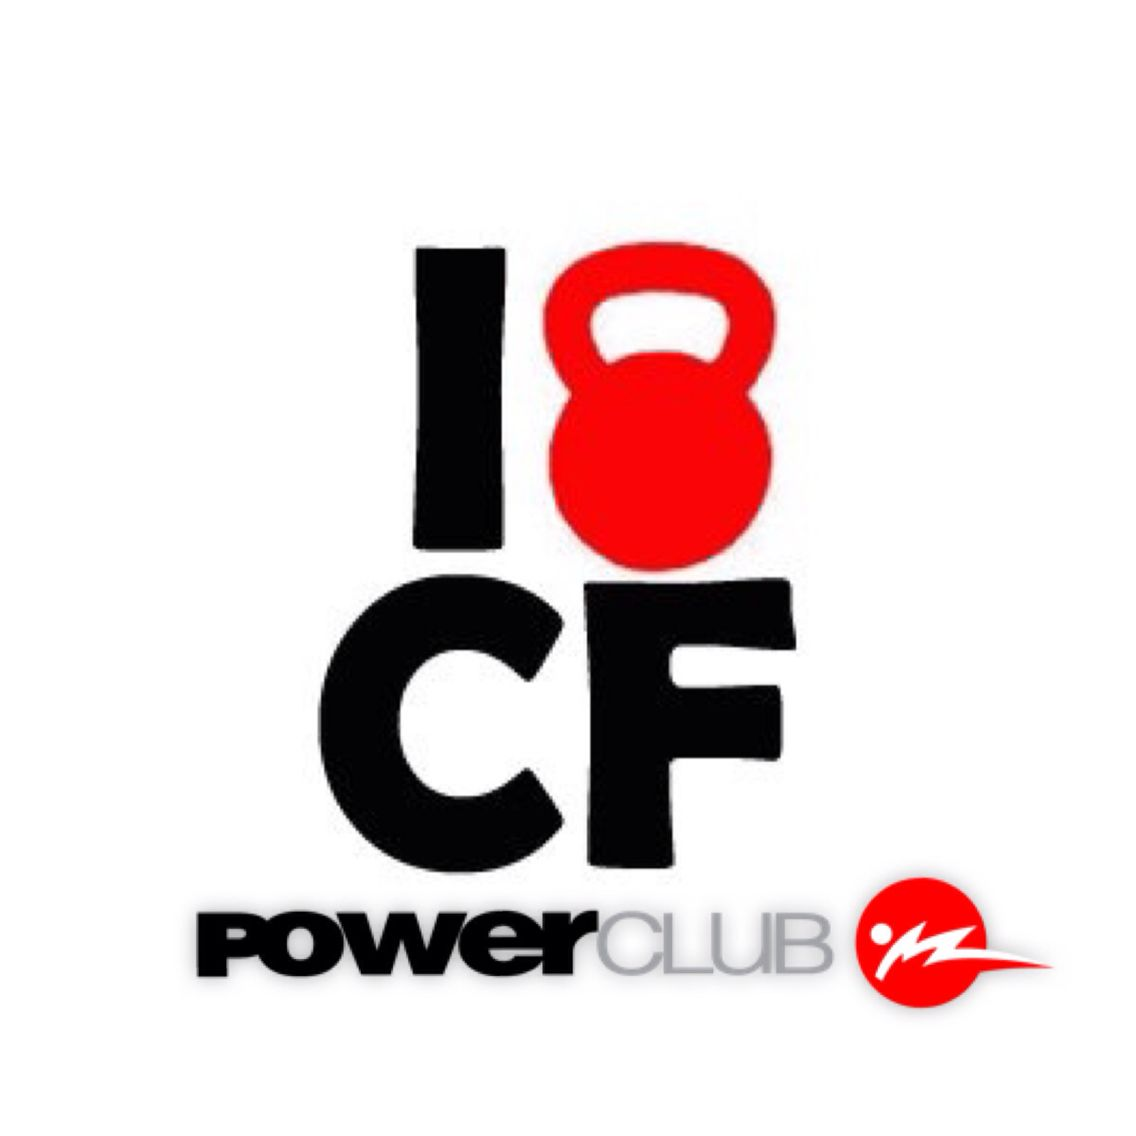 Miércoles de WOD @powerclubpanama #PowerFit #CualEsTuExcusa #Training #LoveCrossFit